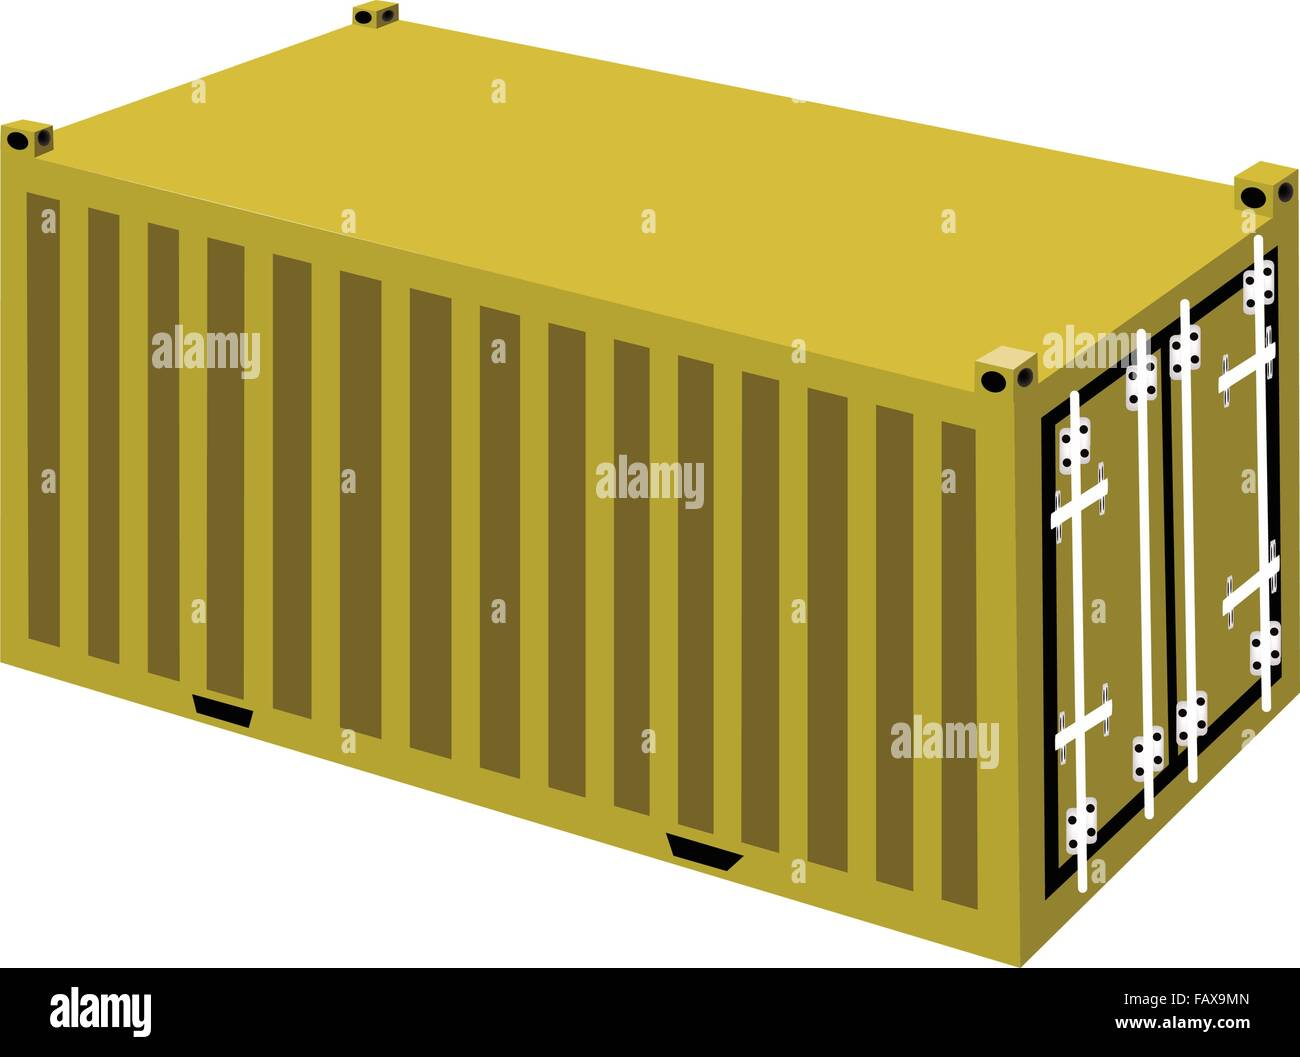 An Illustration Yellow Cargo Containers Freight Container or Stock